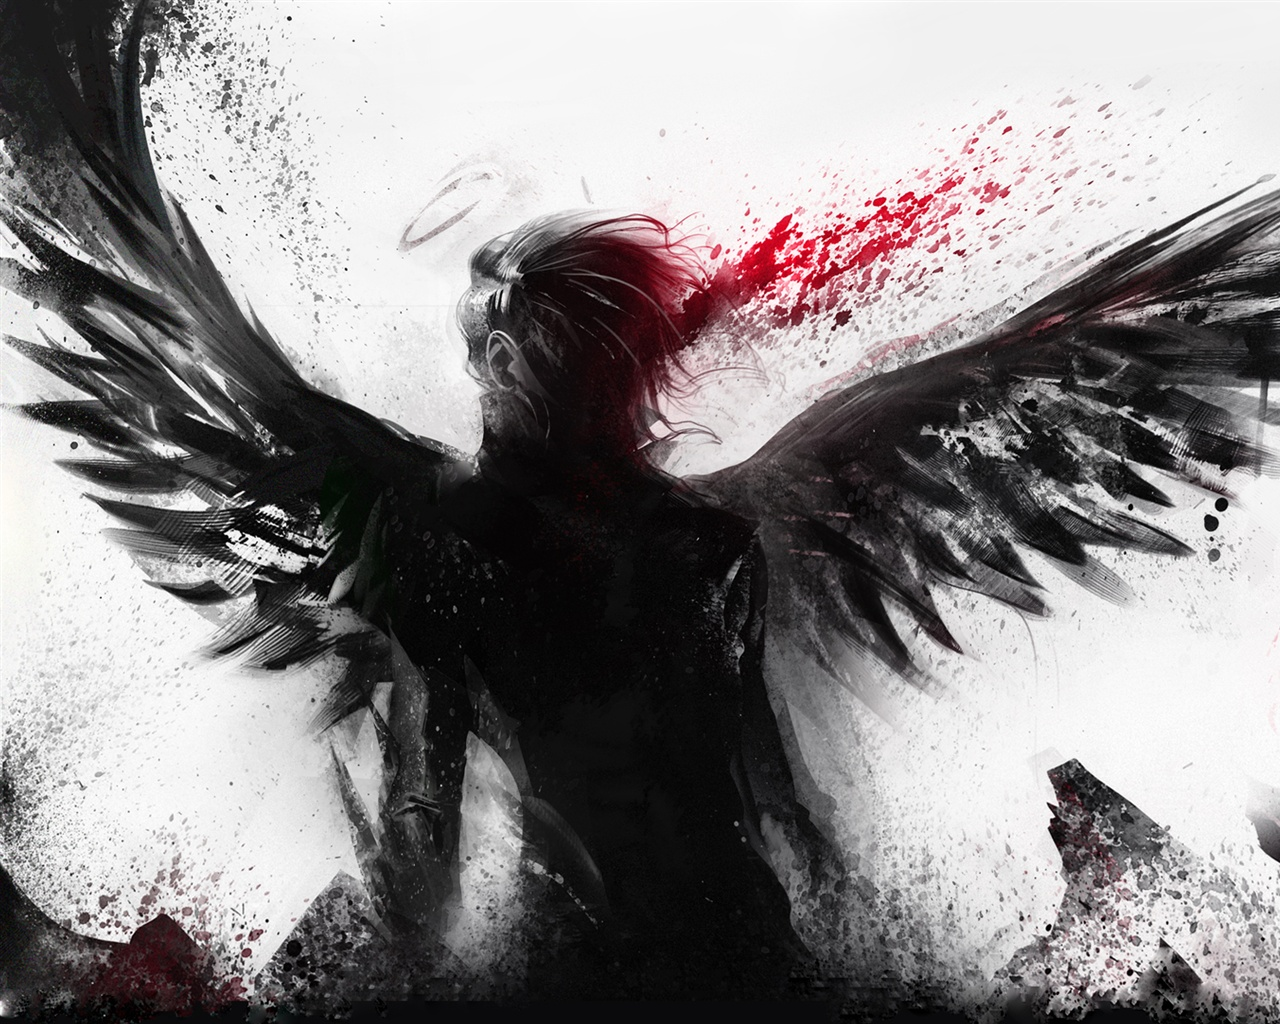 wallpaper bleeding of the black angel 1920x1200 hd picture